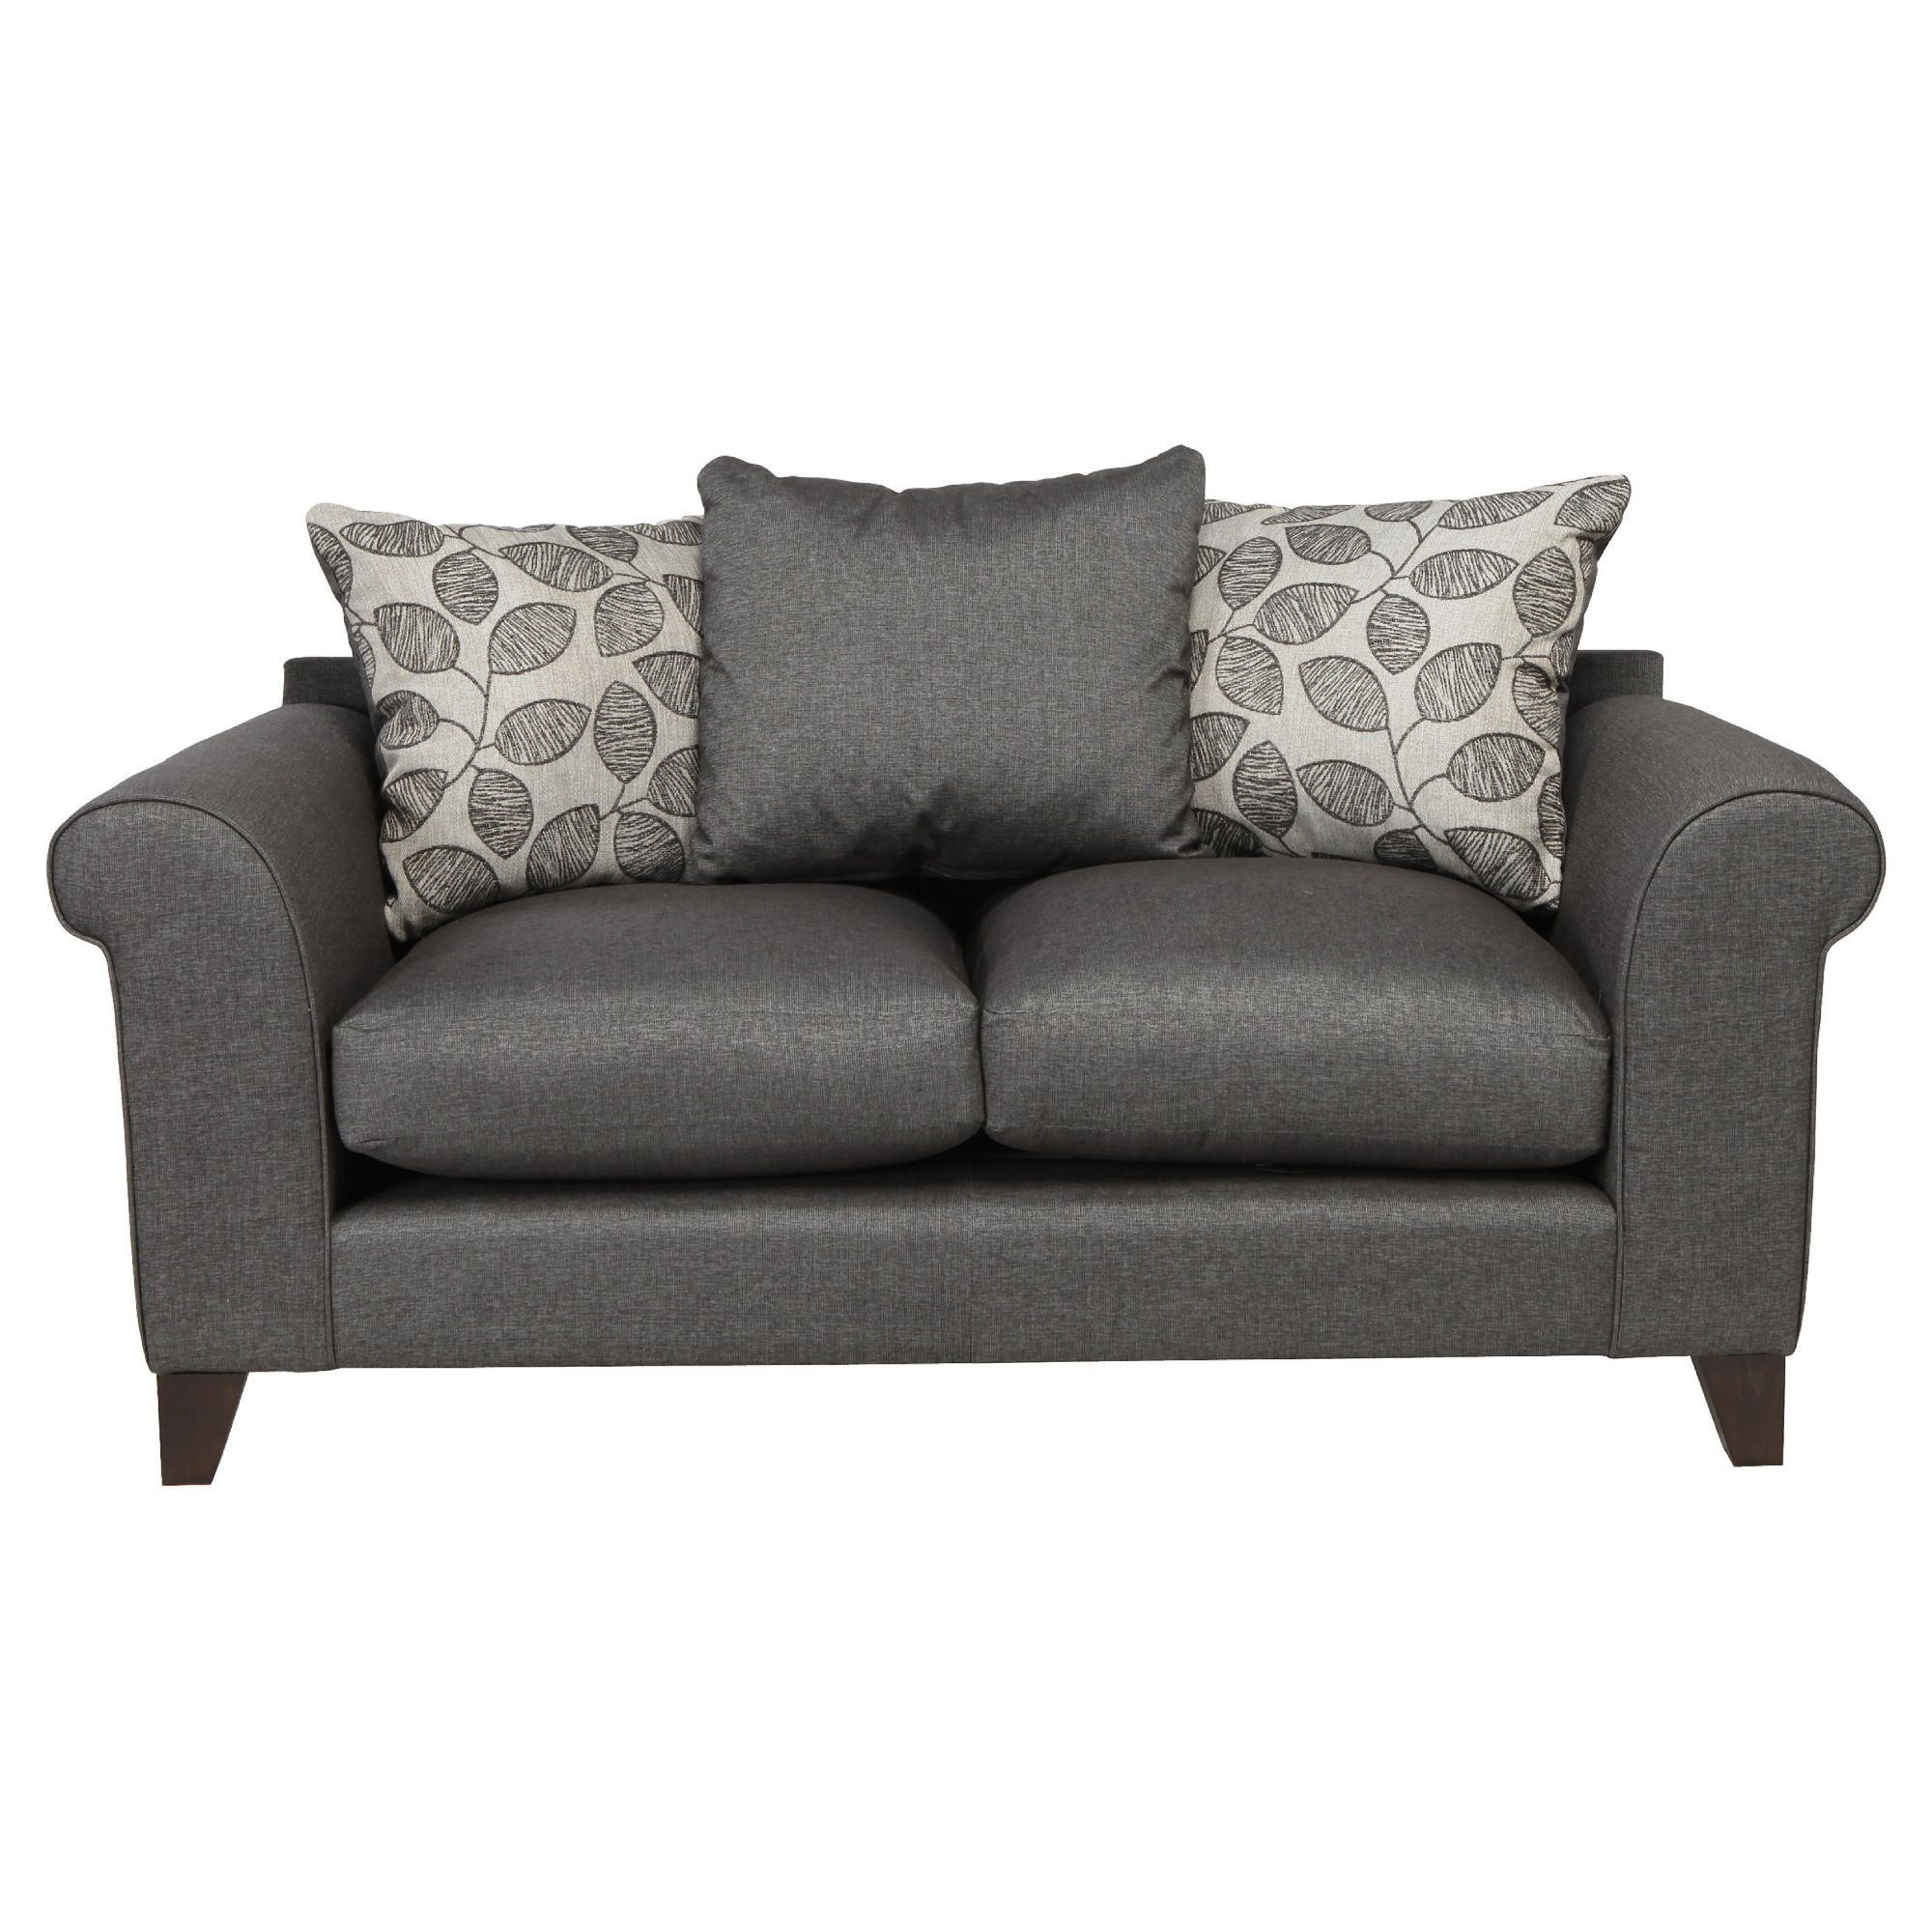 Amersham Small Scatter Back Sofa Charcoal at Tesco Direct